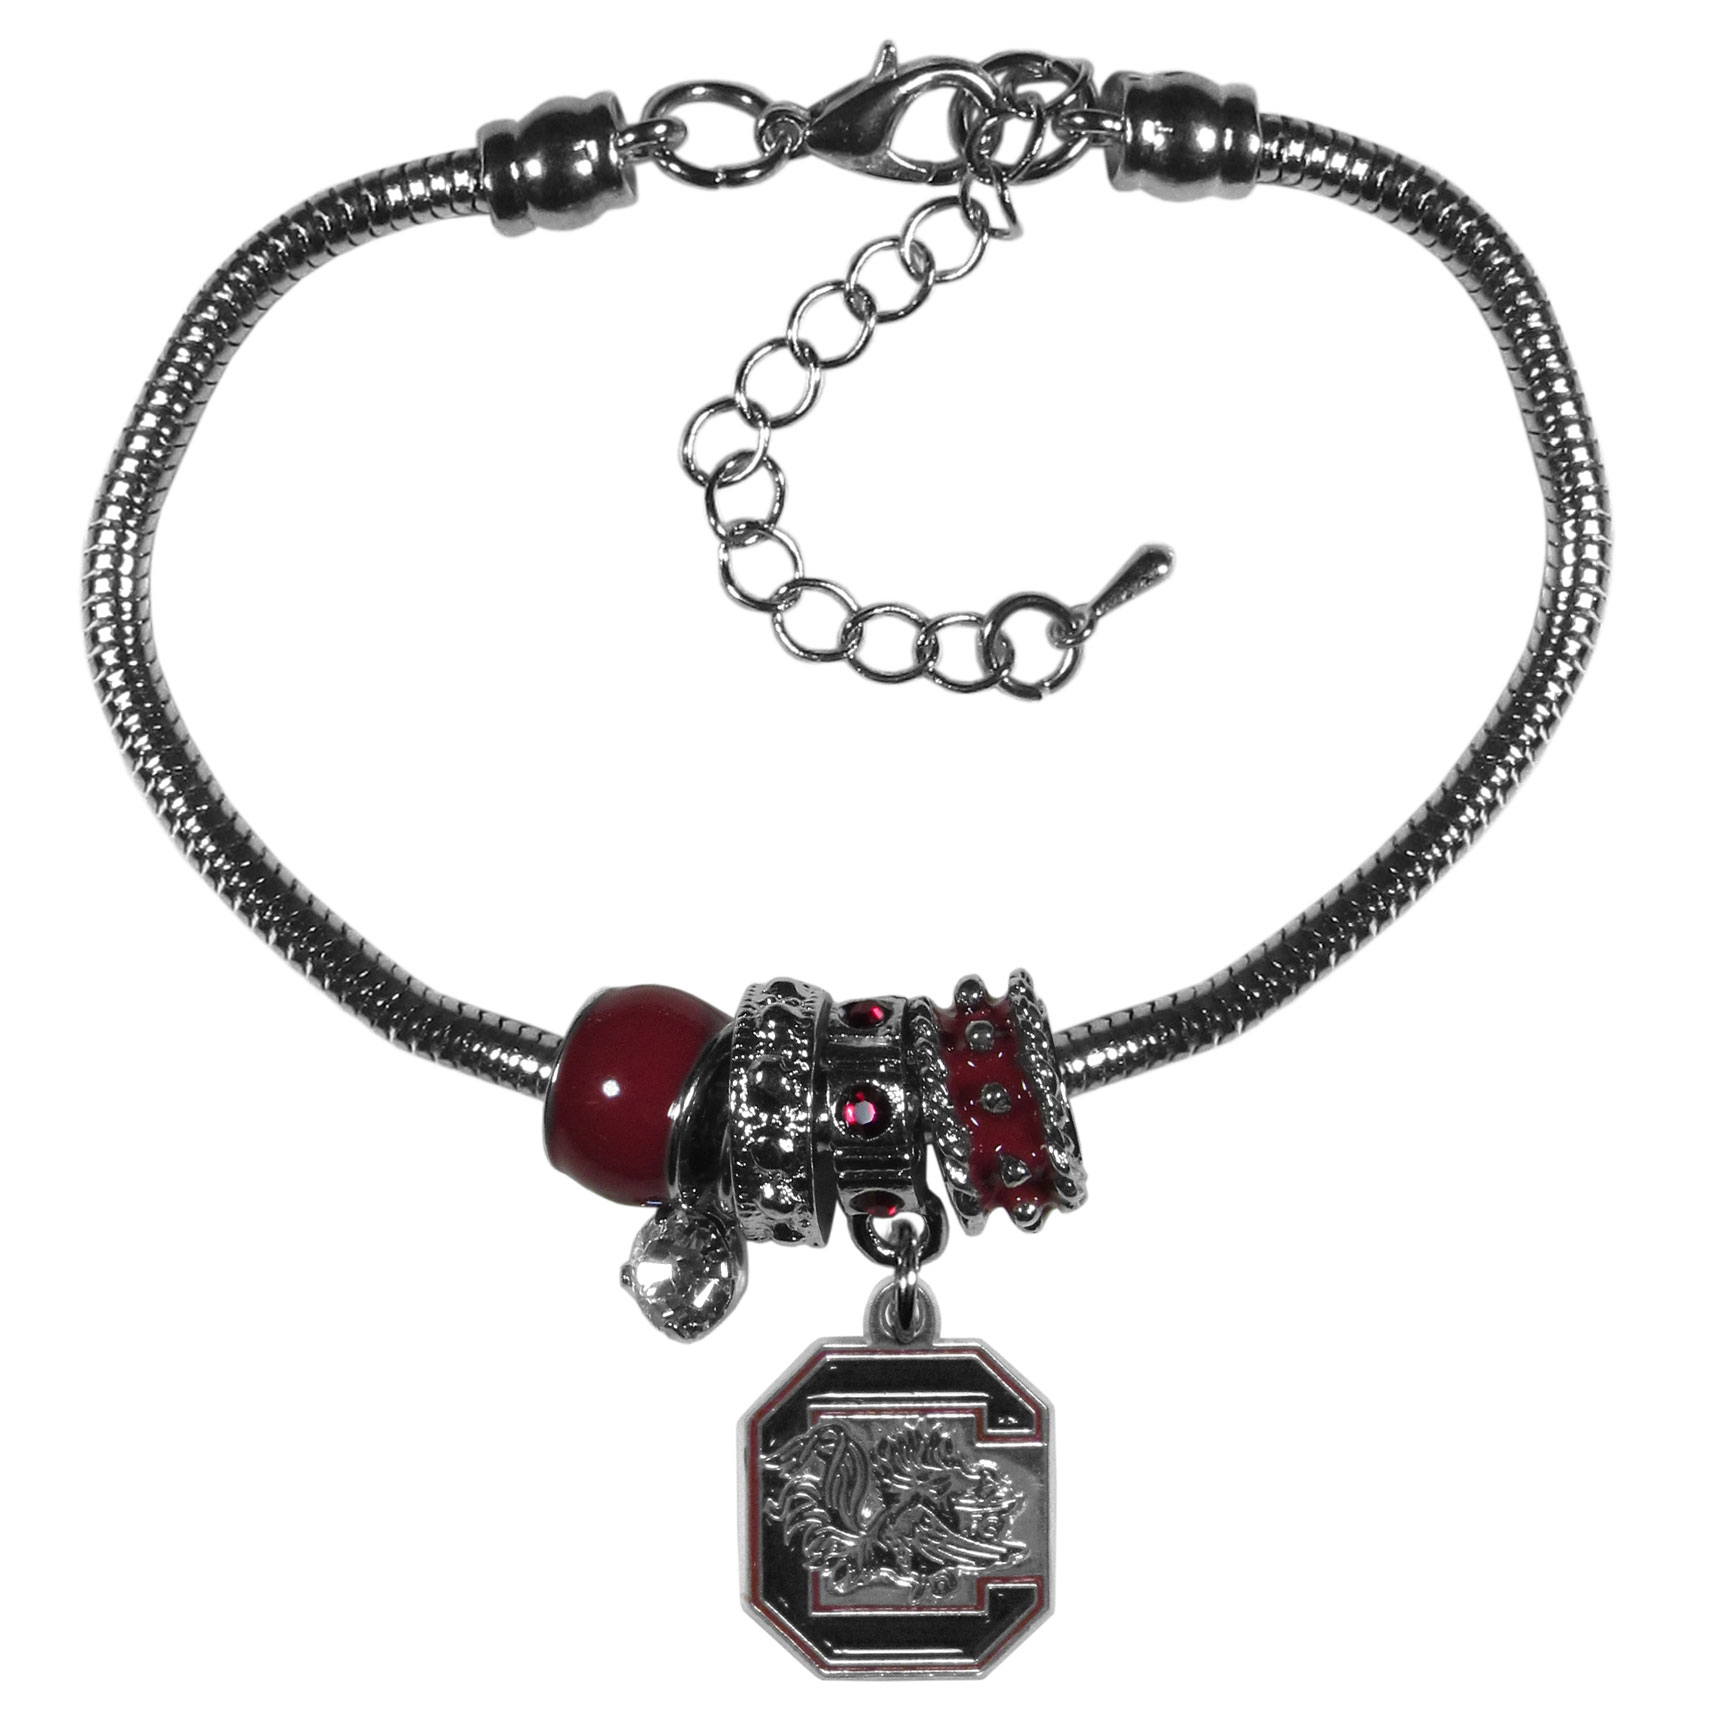 S. Carolina Gamecocks Euro Bead Bracelet - We have combined the wildly popular Euro style beads with your favorite team to create our  S. Carolina Gamecocks bead bracelet. The 7.5 inch snake chain with 2 inch extender features 4 Euro beads with enameled team colors and rhinestone accents with a high polish, nickel free charm and rhinestone charm. Perfect way to show off your team pride.